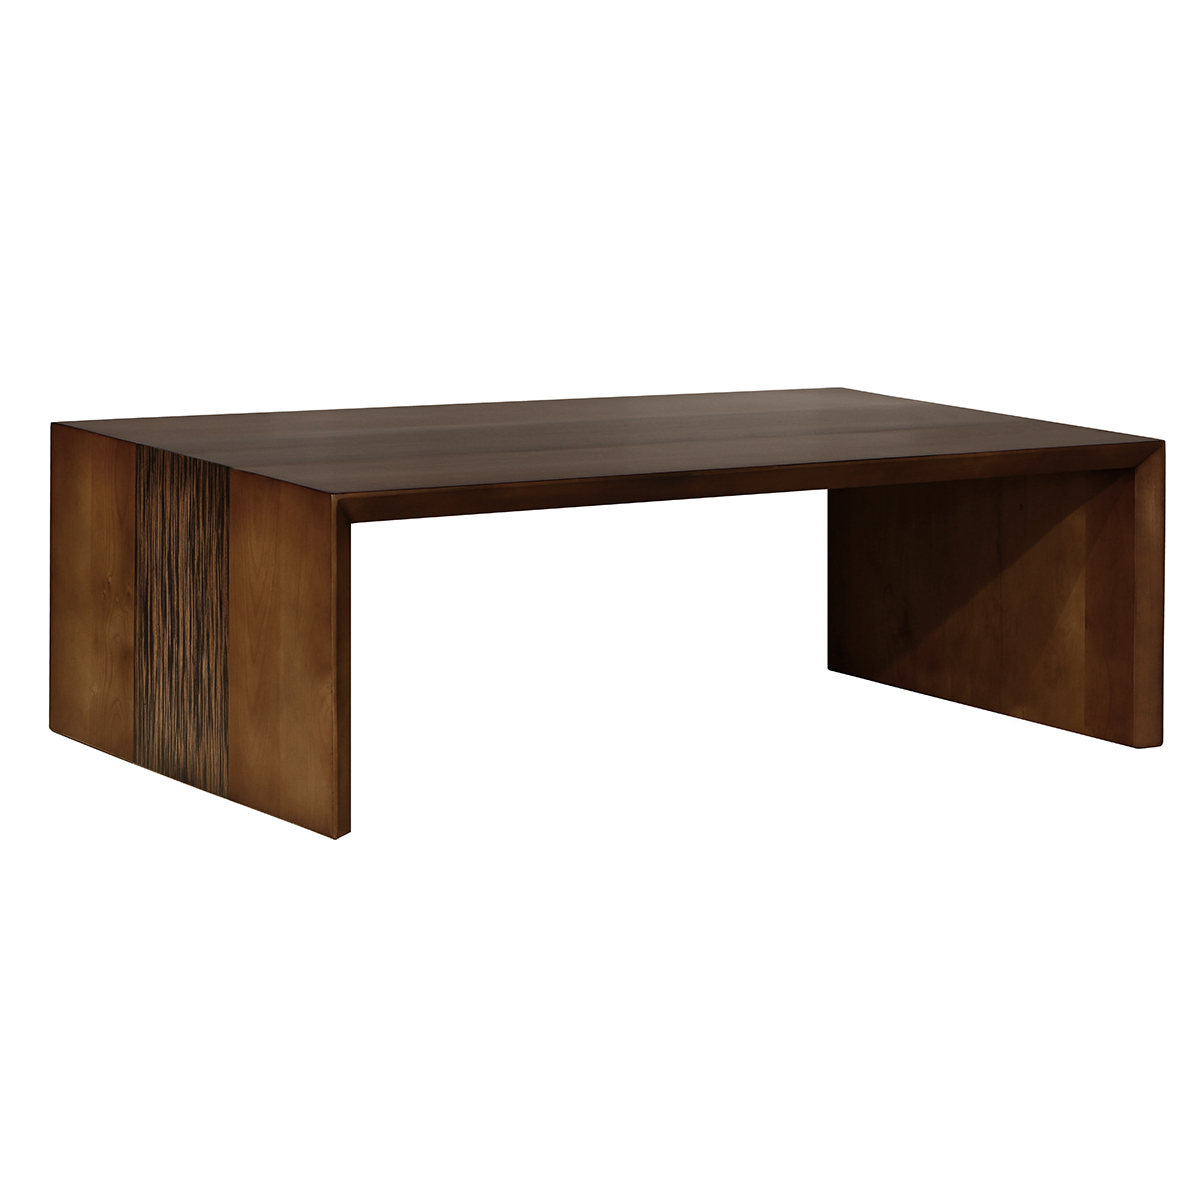 Batari Coffee Table Espresso_Macassar Angle